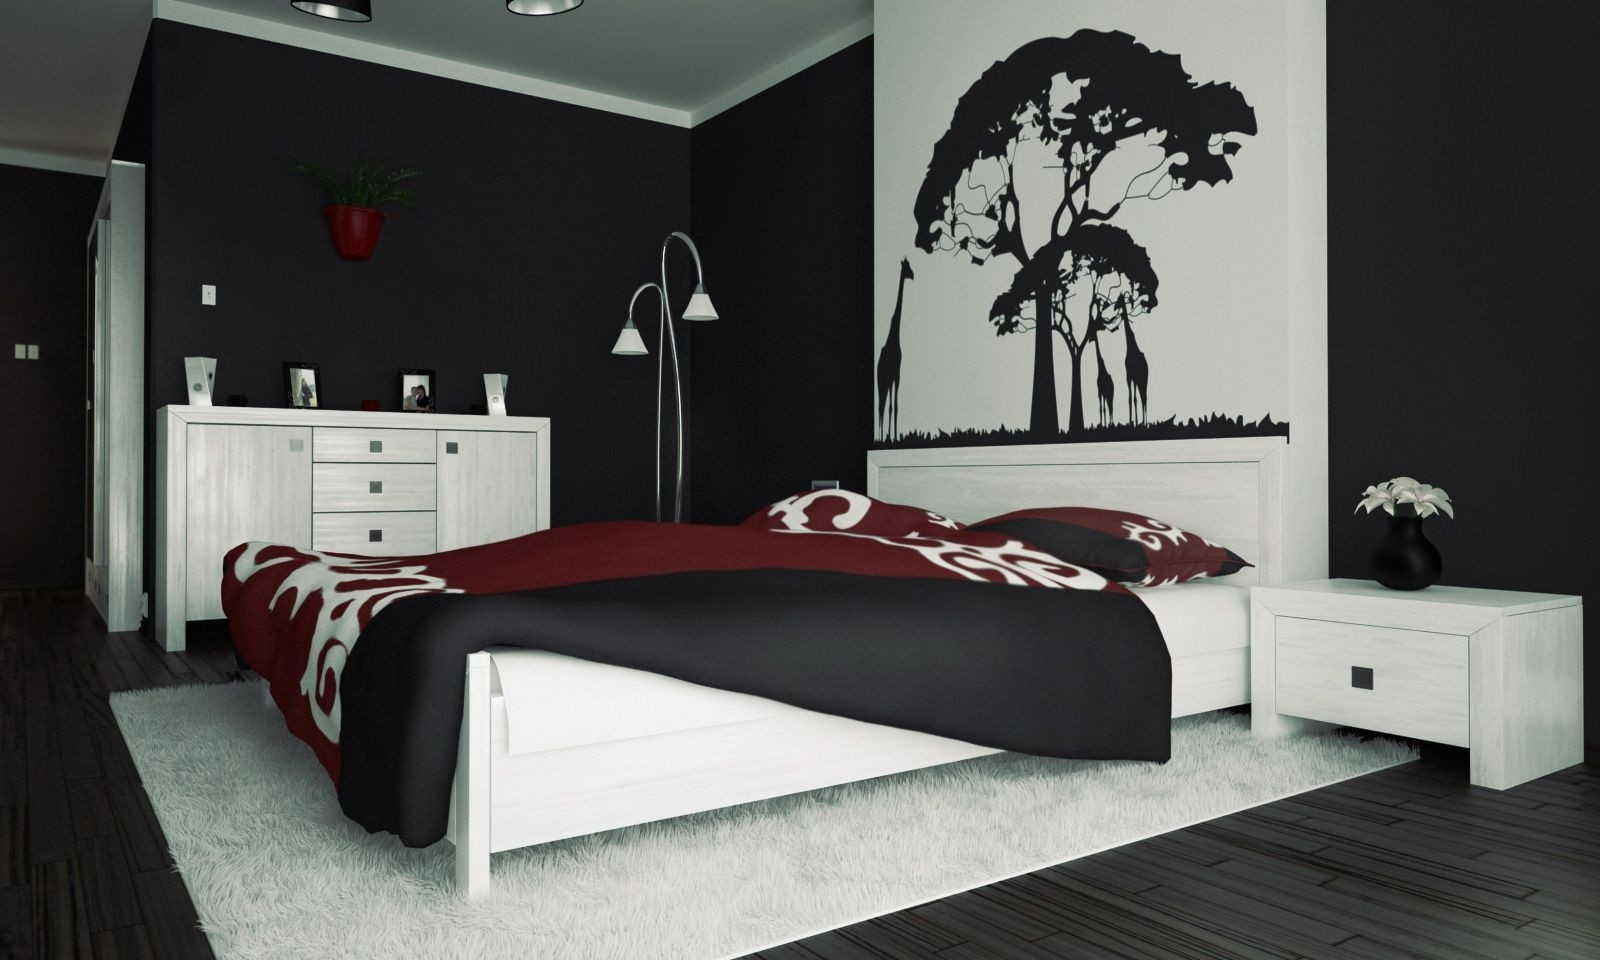 Black And White Bedroom Ideas | Trellischicago within Bedroom Wall Painting Designs Black And White 30010